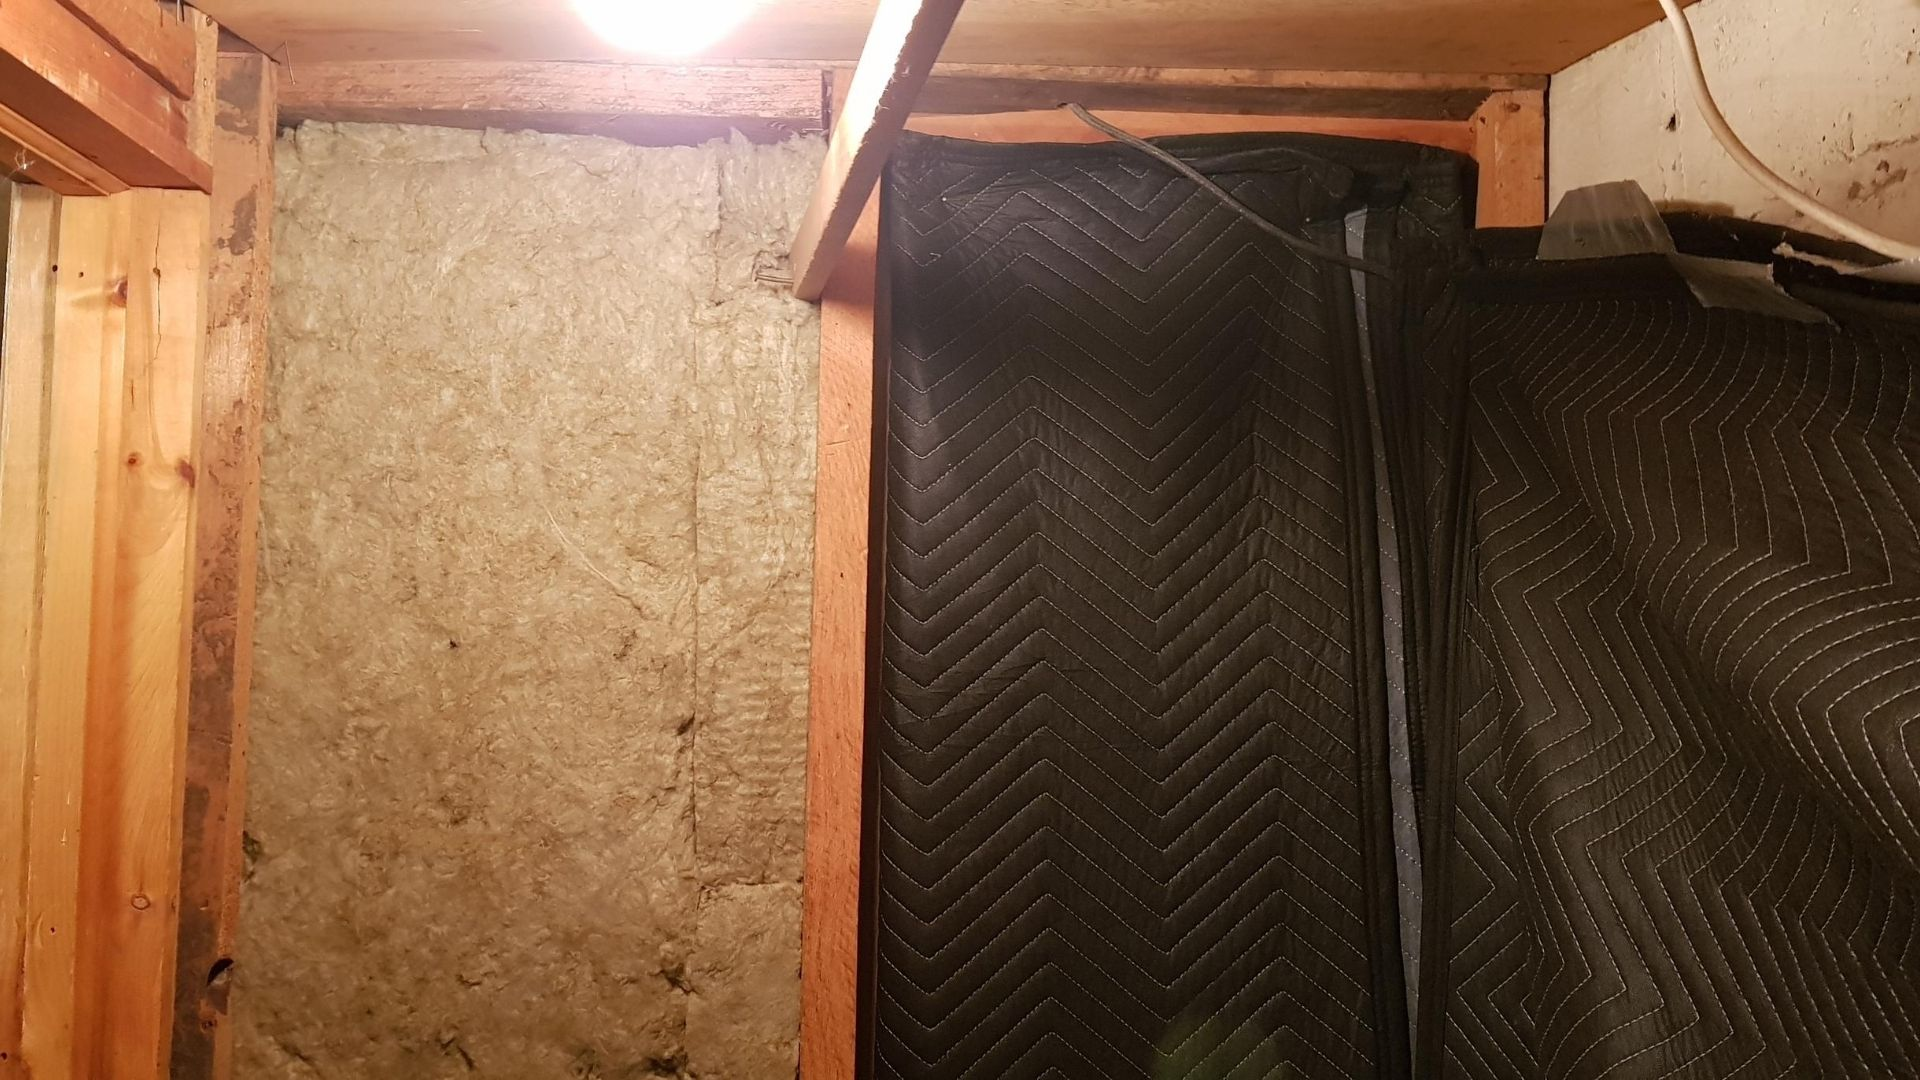 With 2 layers of moving blankets over the sound insulation the vocal booth sounds great